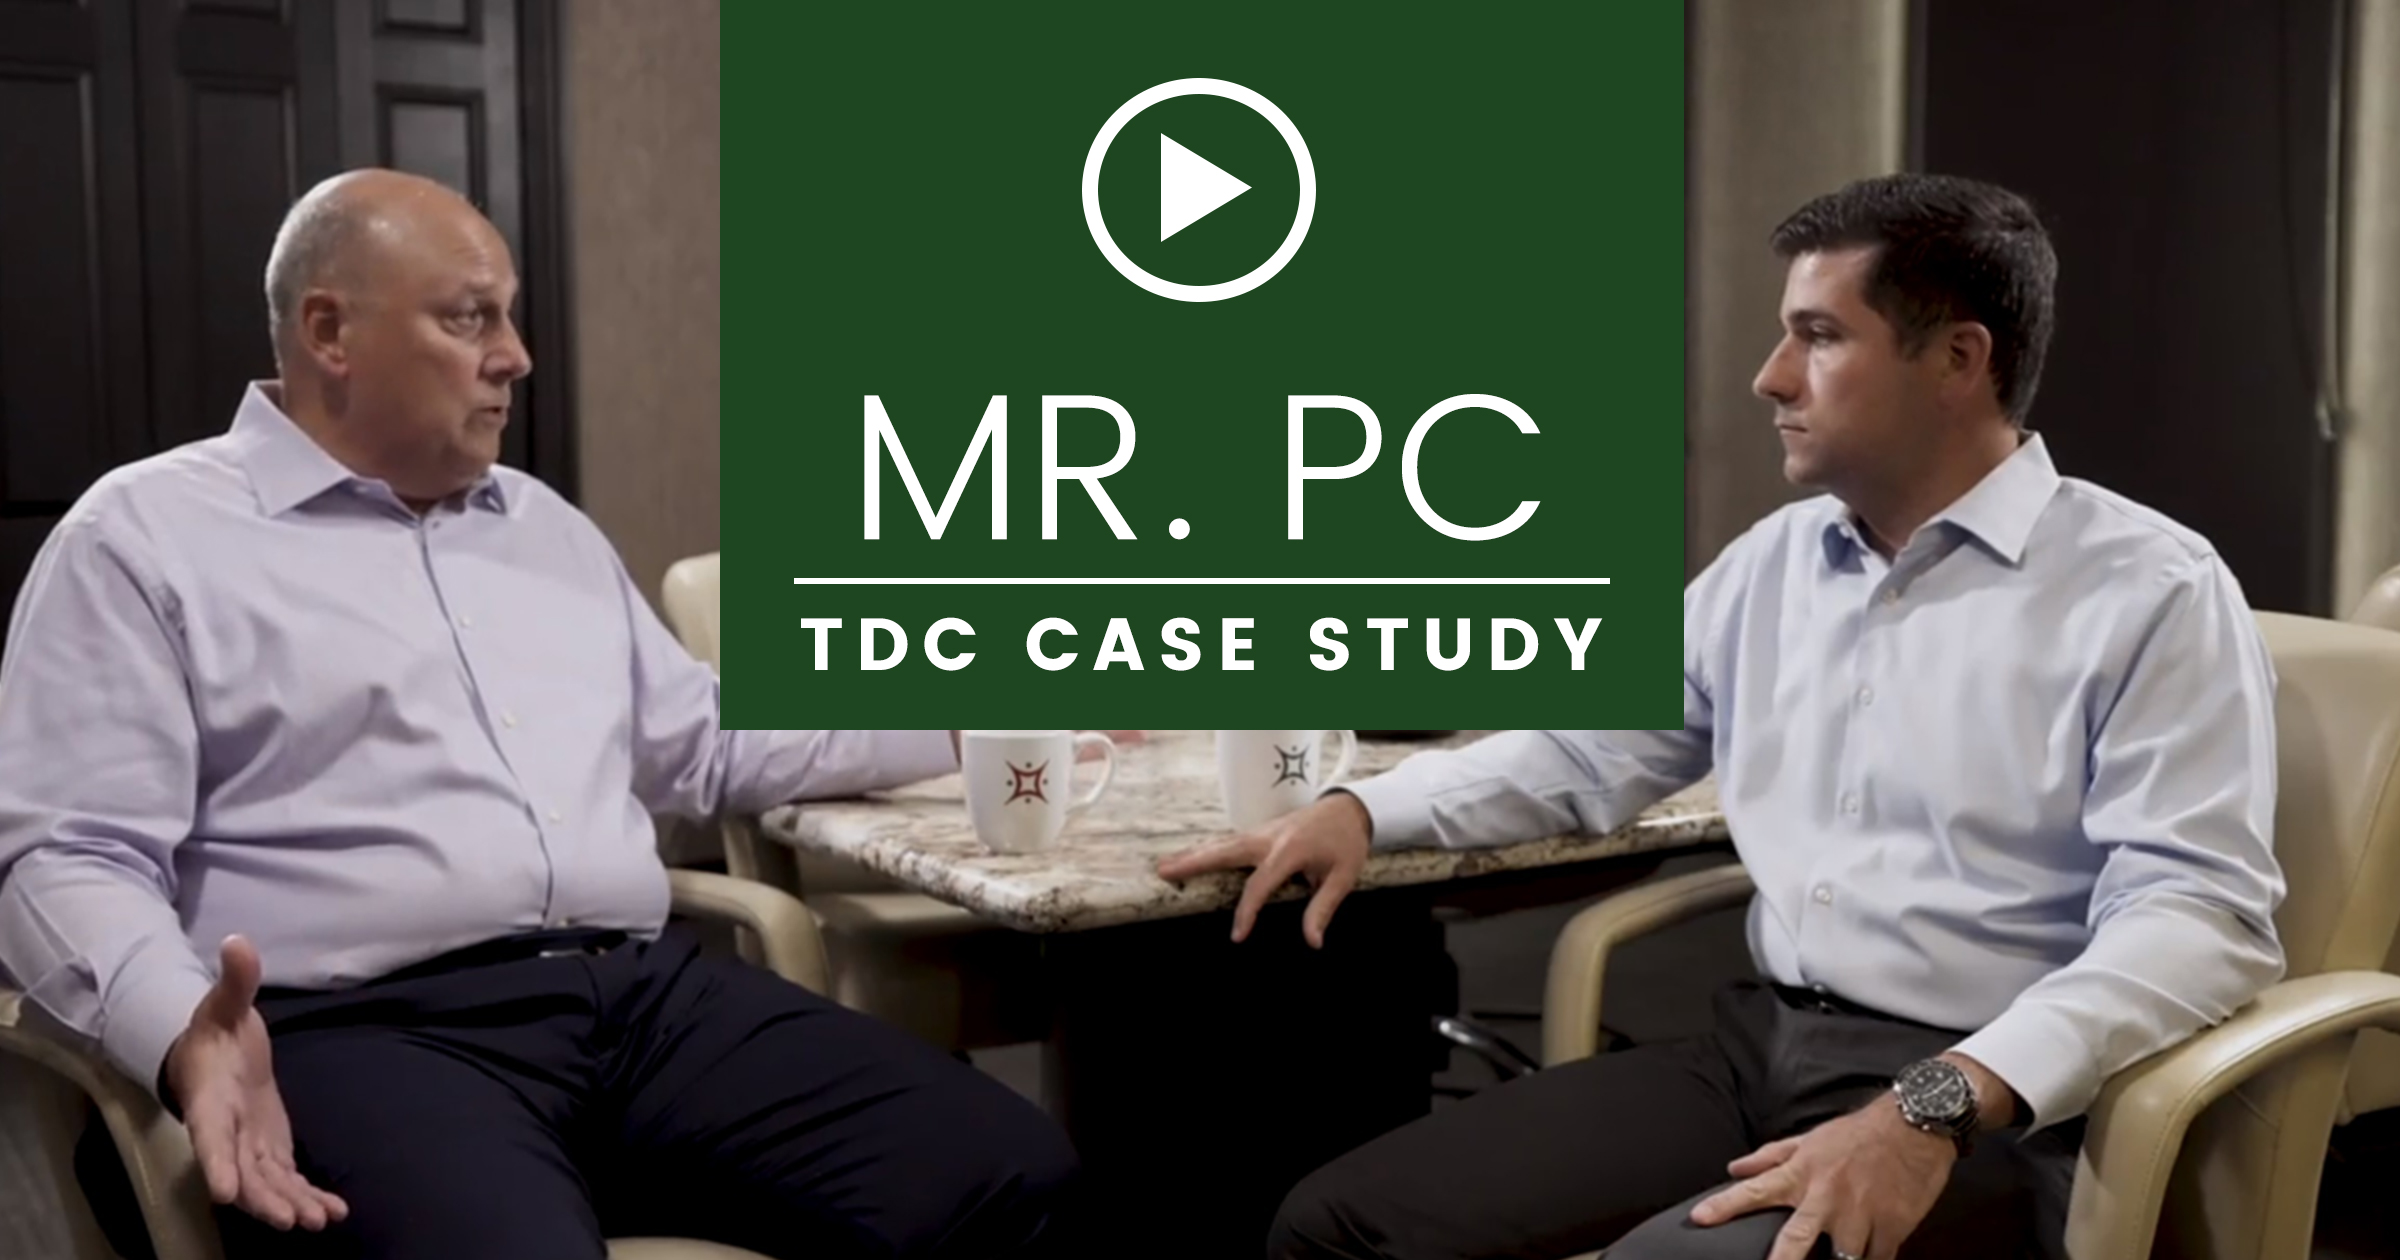 Case Study: Mr. PC (Video and Case Study)